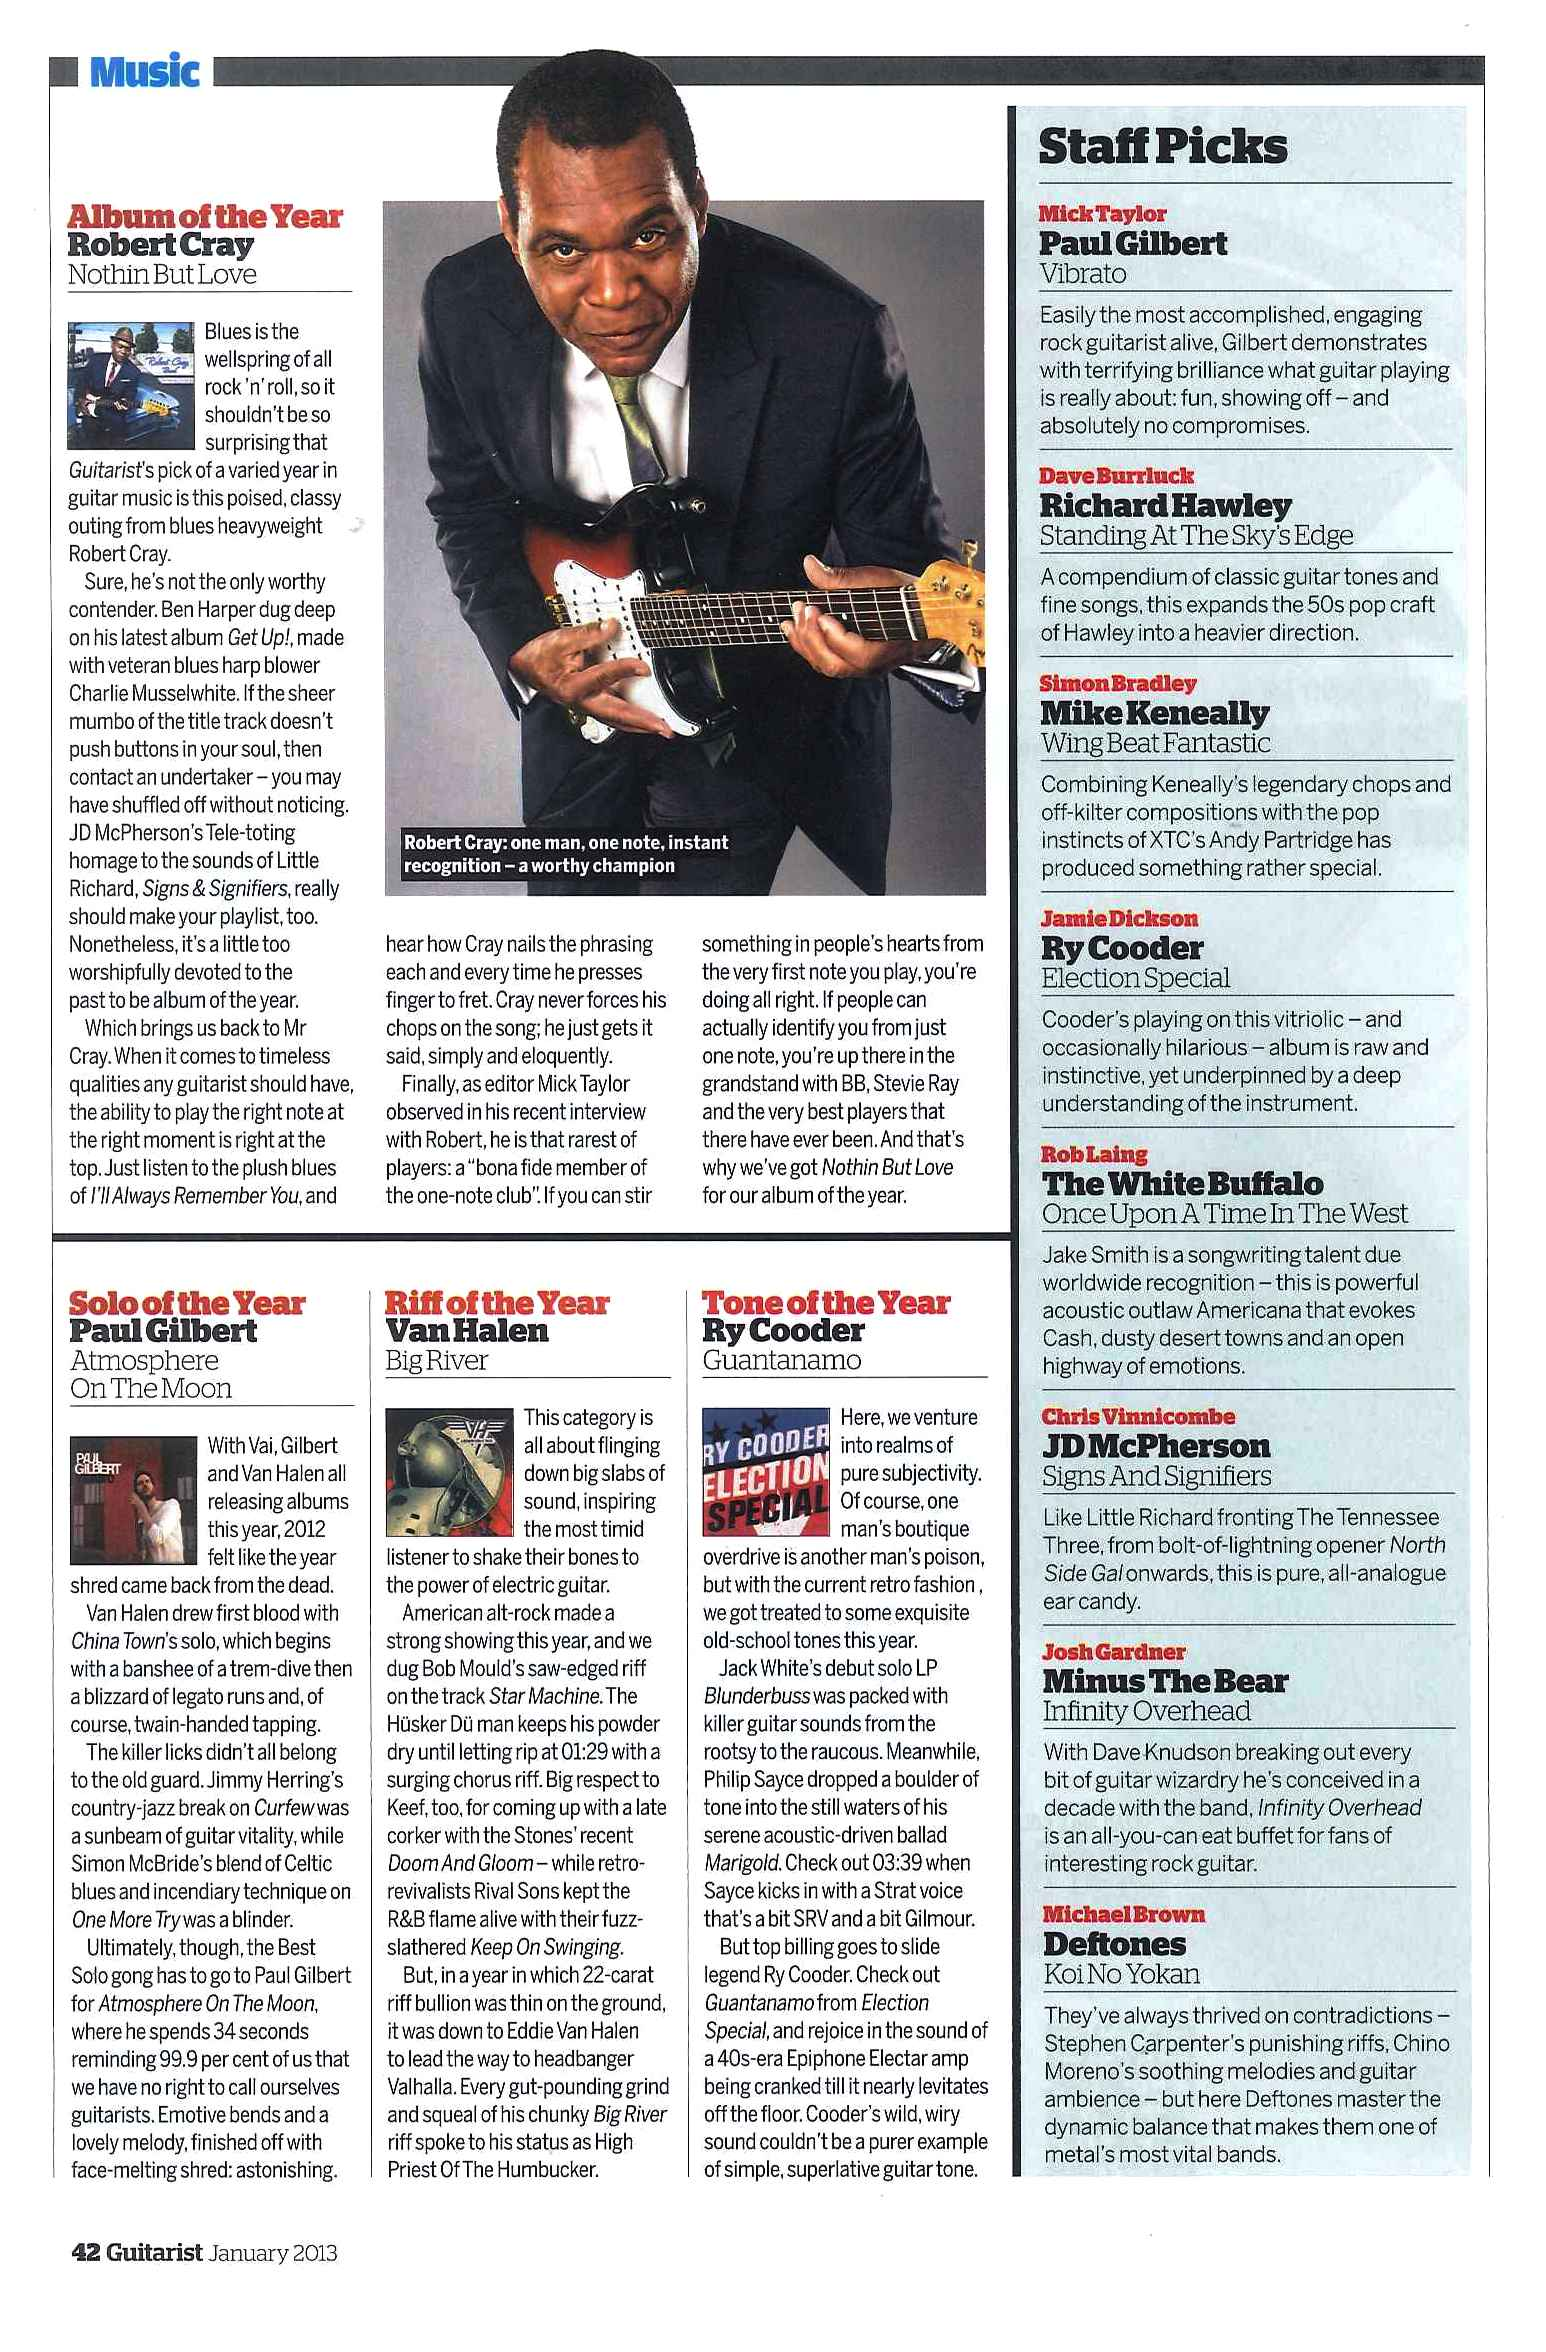 Guitarist Magazine_January 2013_Robert Cray Album of The Year_2